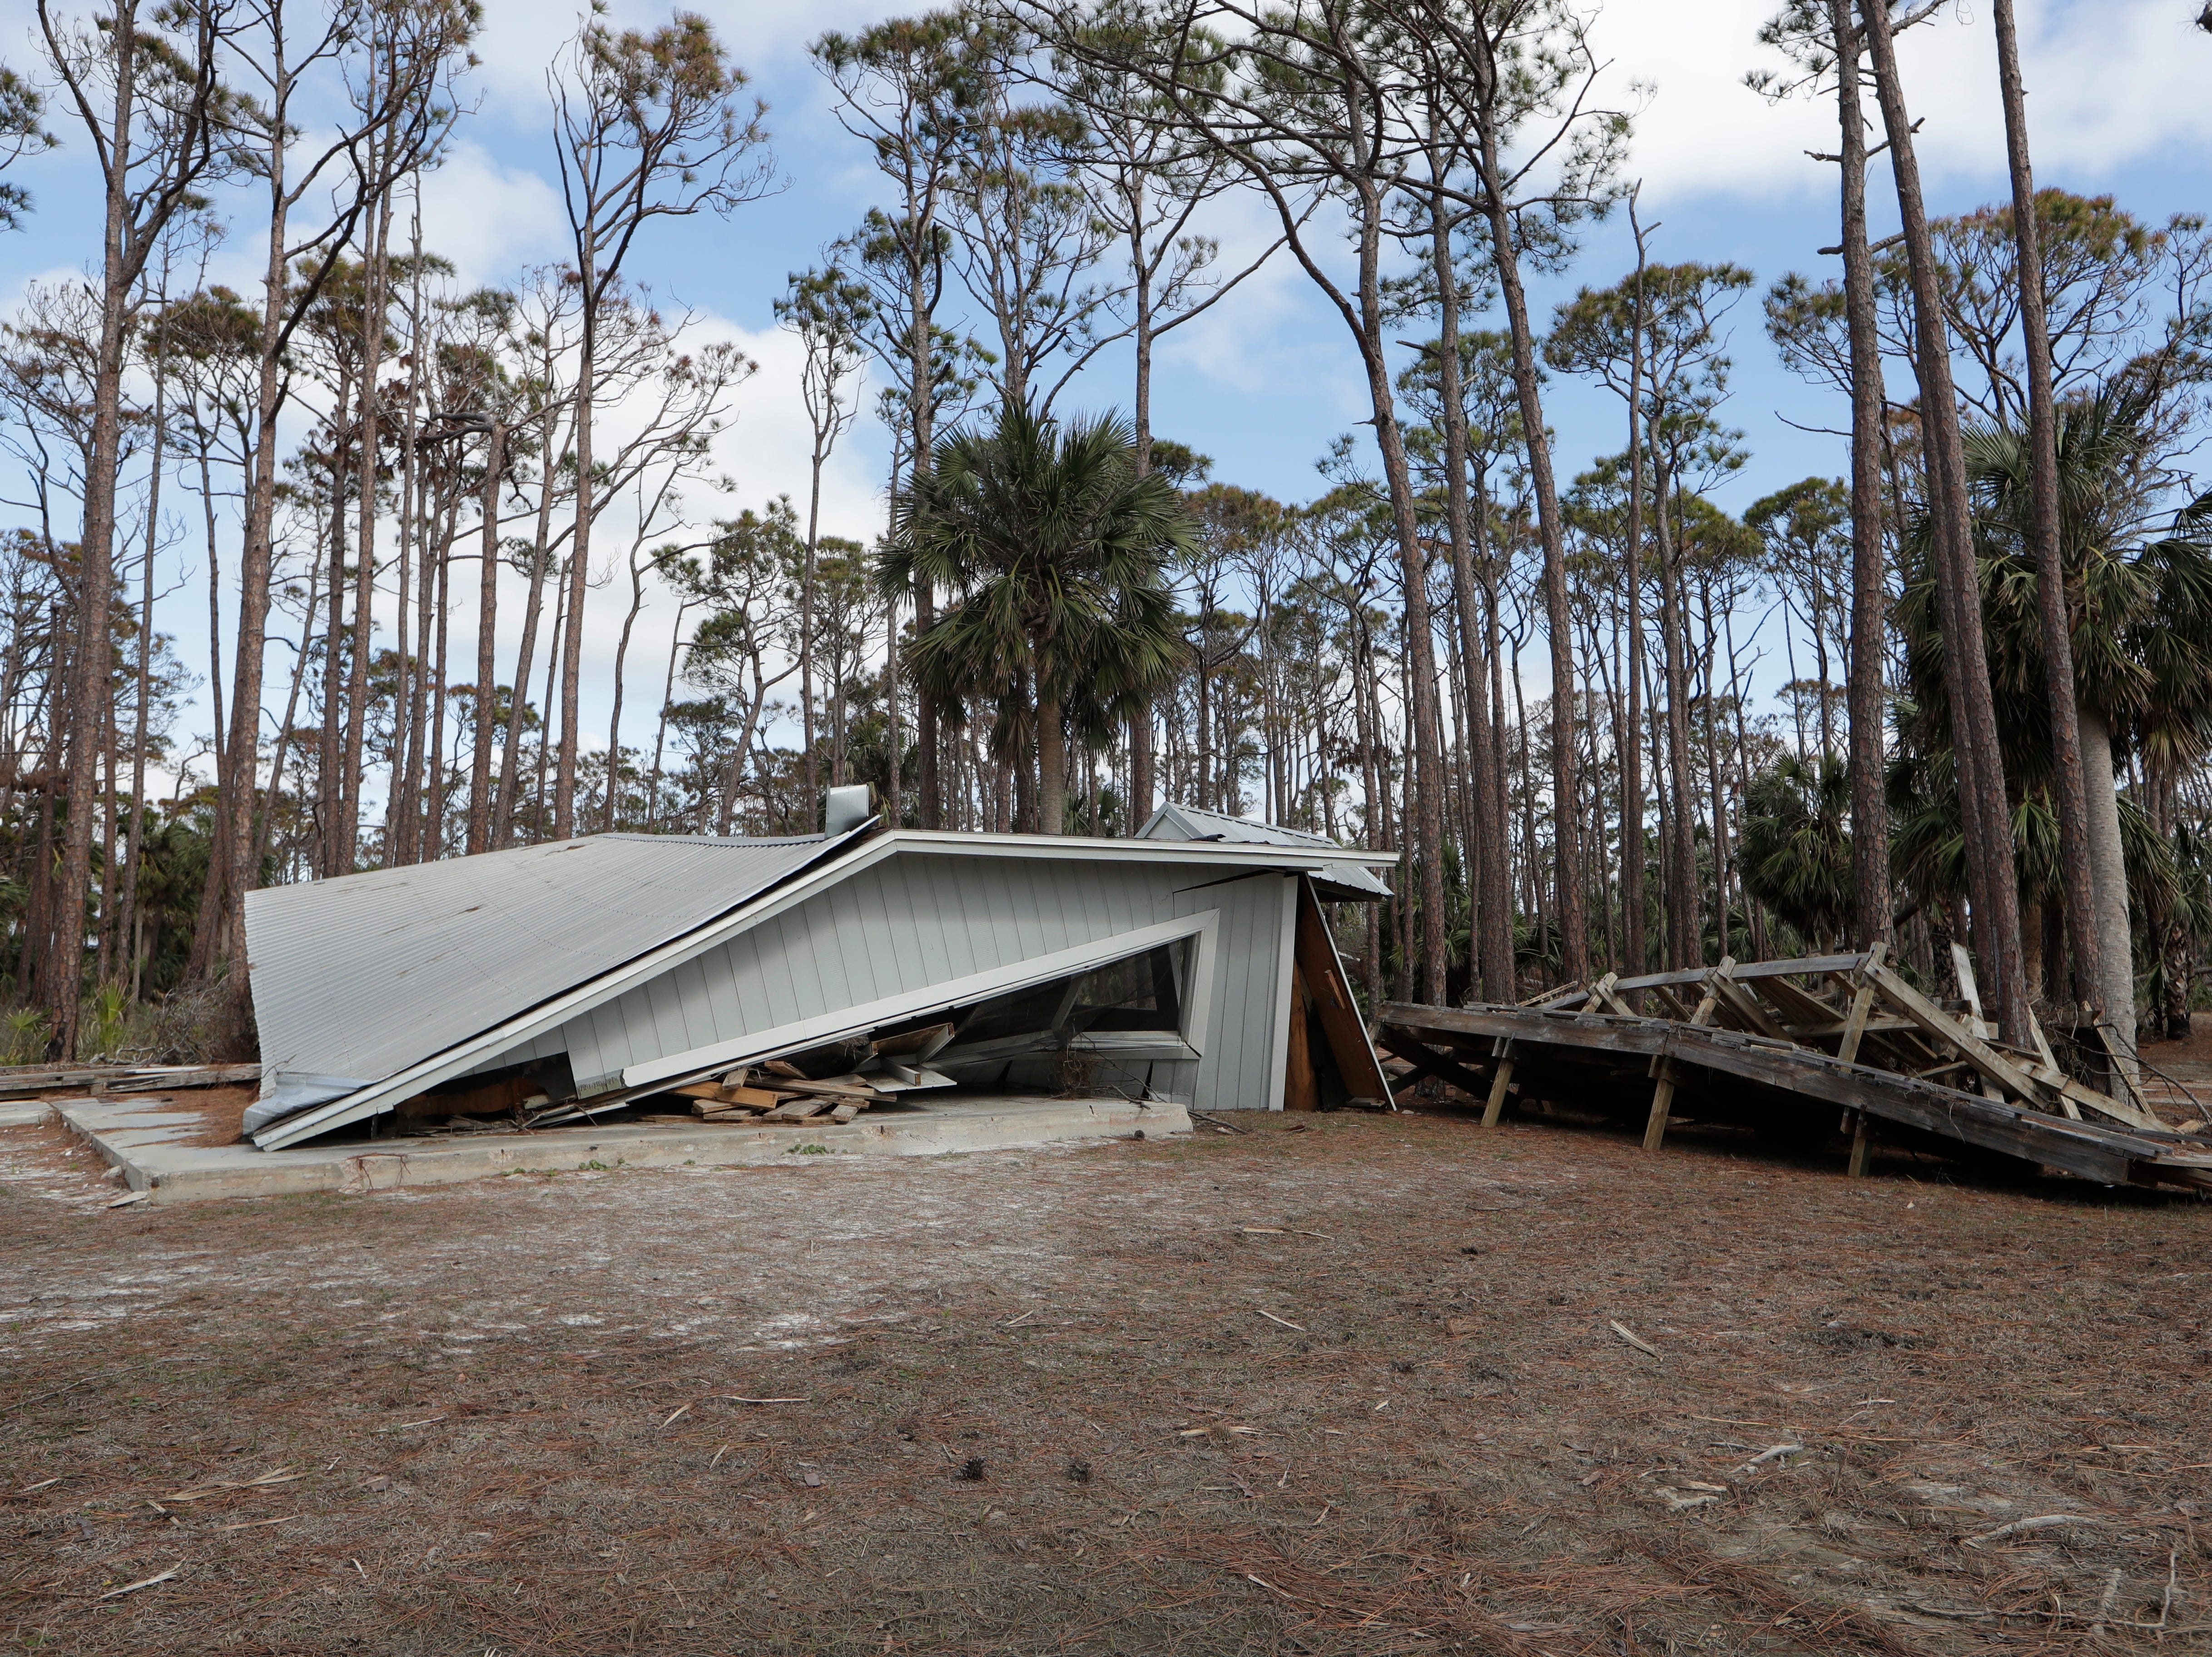 A pavilion in St. Joseph Peninsula State Park seen on Monday, Jan. 14, 2019, was left flattened by Hurricane Michael on Oct. 10, 2018.